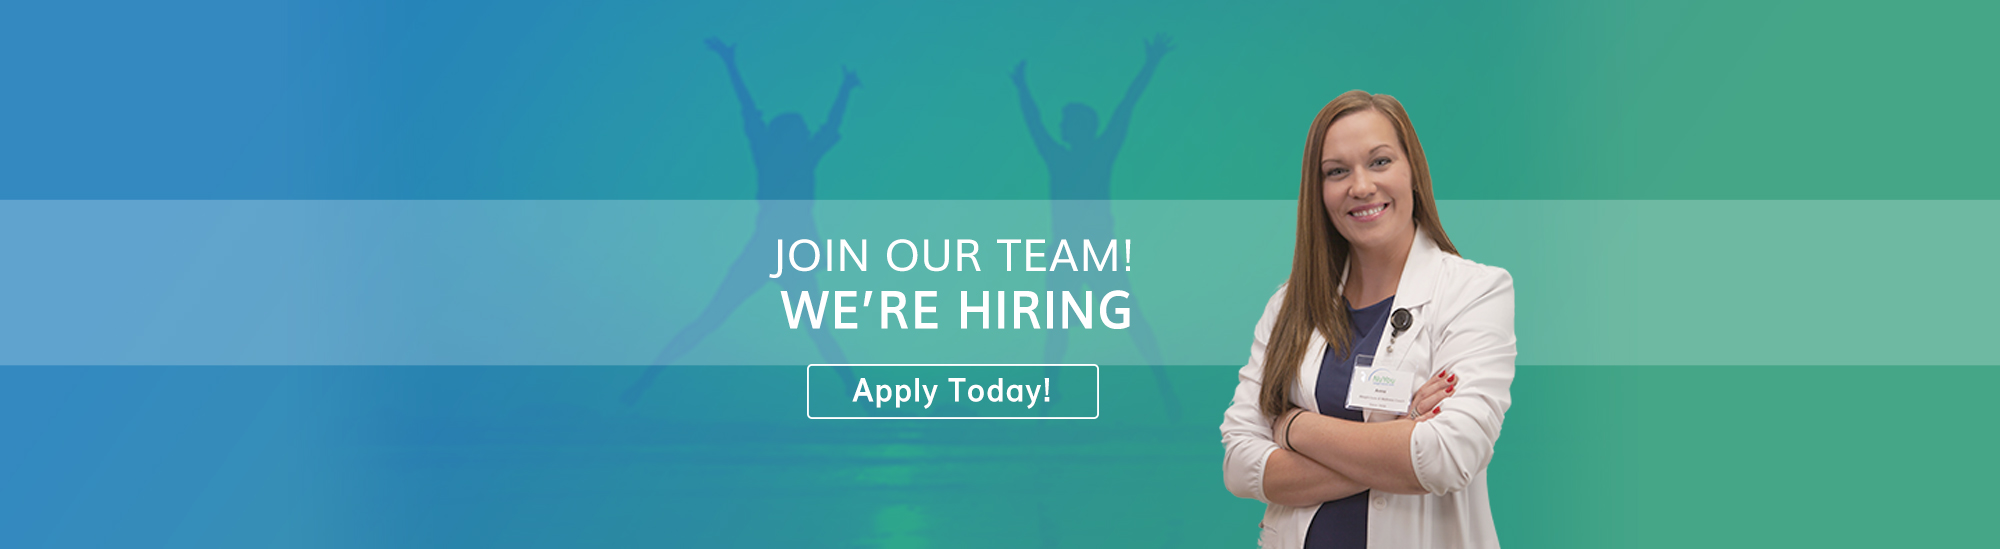 Join the team at NuYou Weight Loss and More - apply online today.